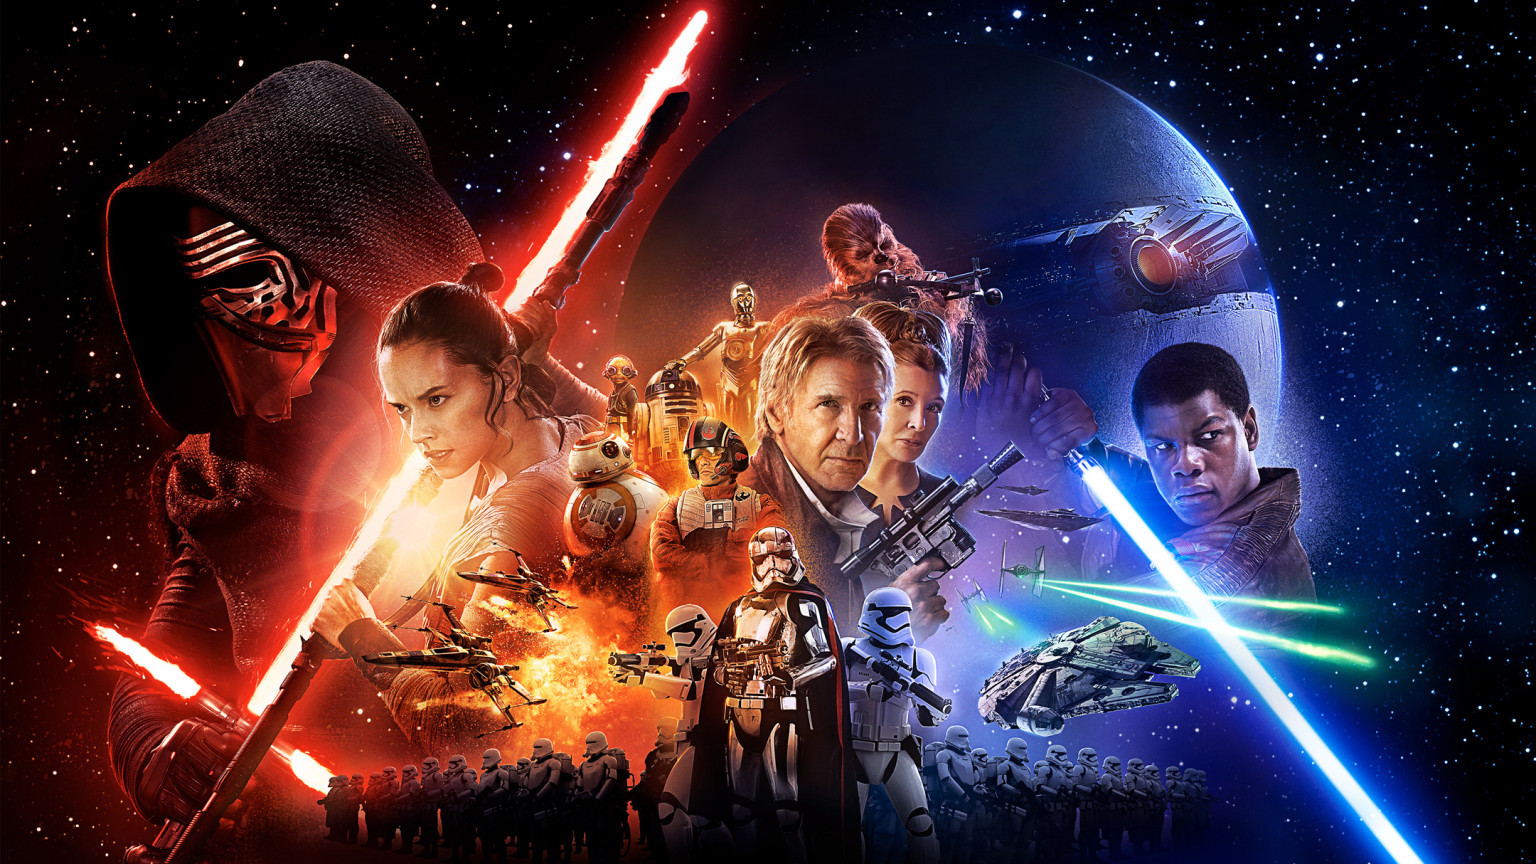 Disney's Season of the Force: Worth it or a waste?